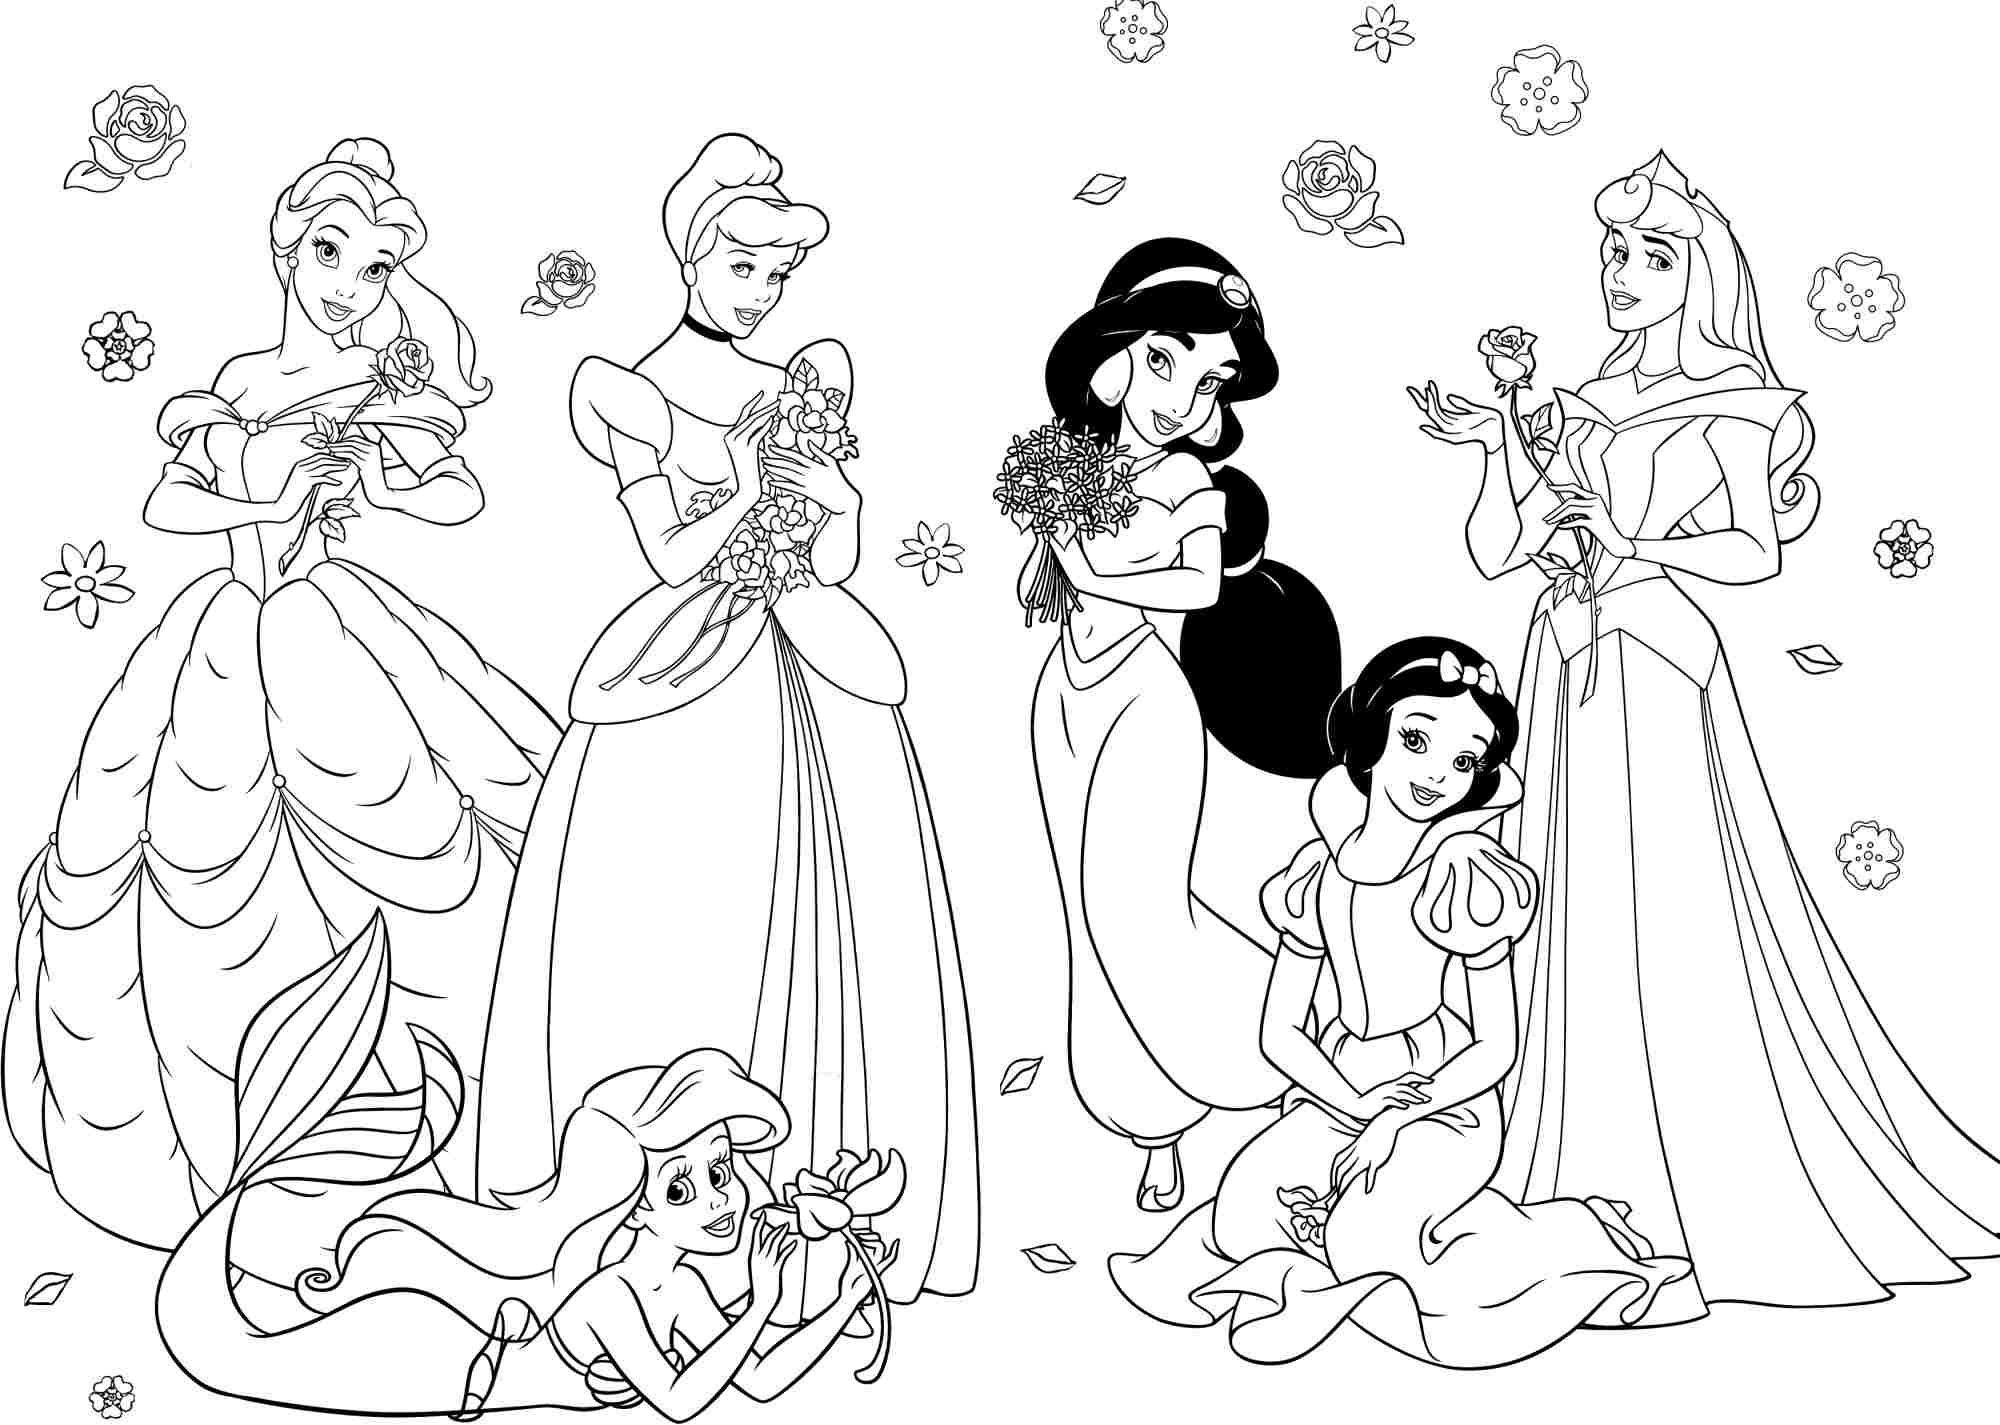 Disney princess coloring book for adults - Princess Coloring Pages For Girls Free Large Images